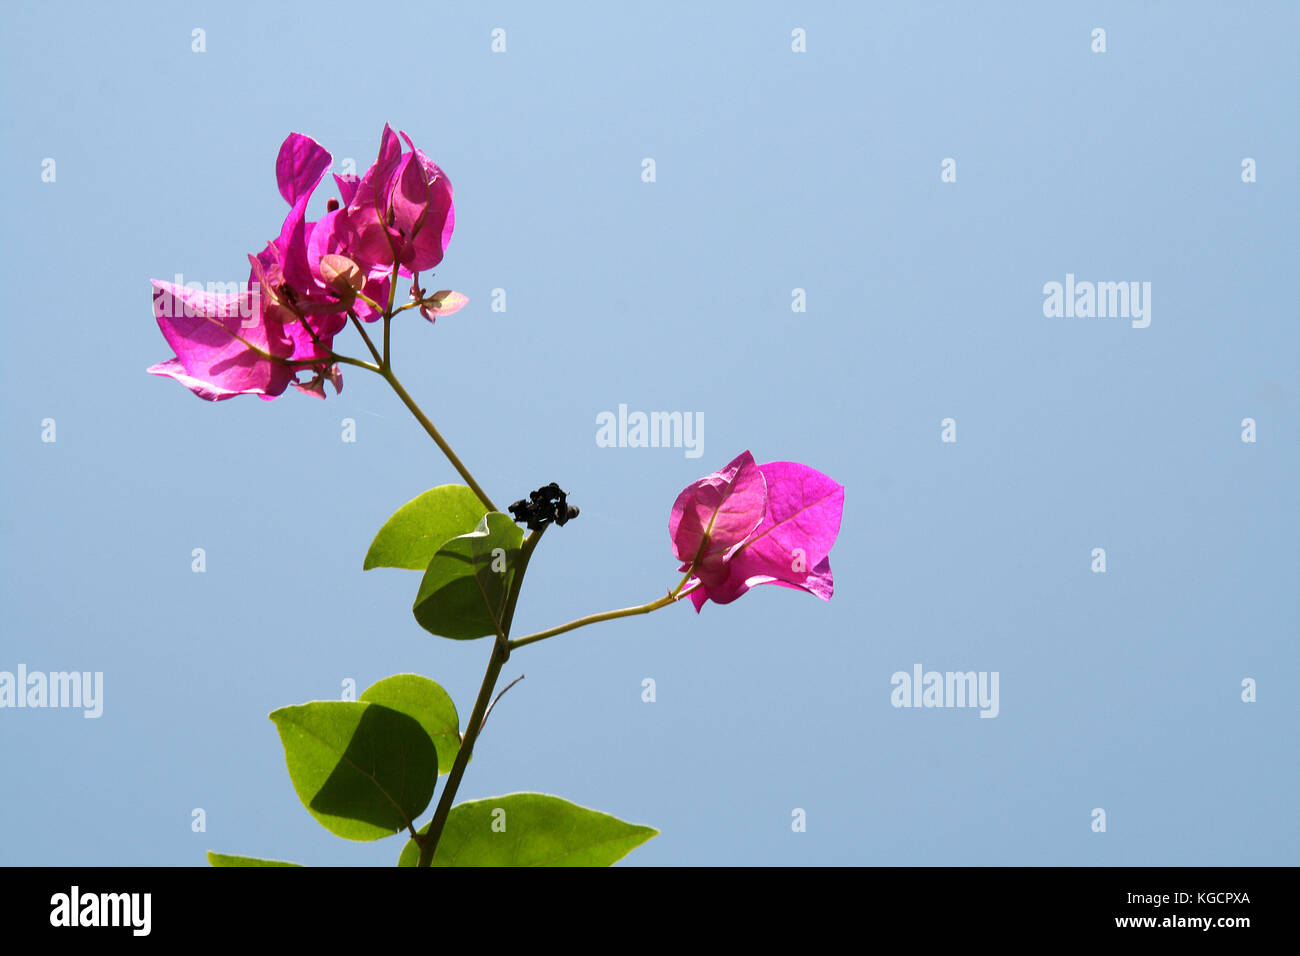 Shoot Of Bougainvillea With Green Leaves And Pink Flowers Isolated